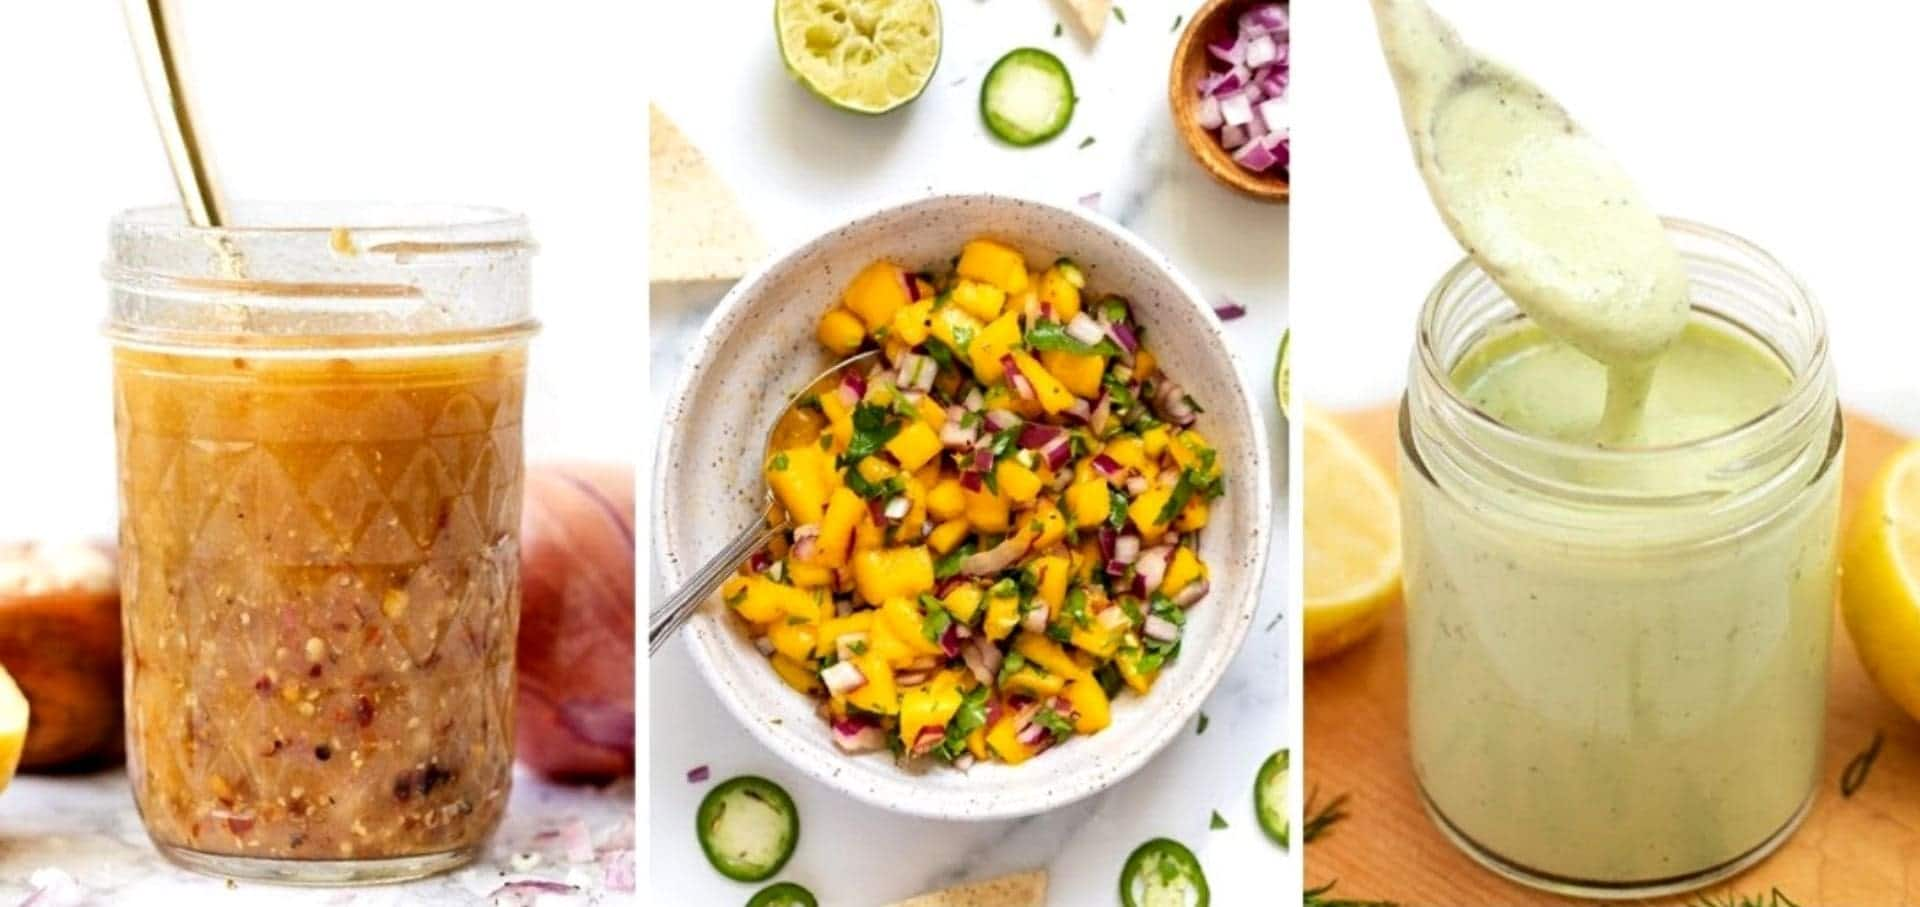 3 healthy condiments for all types of meals